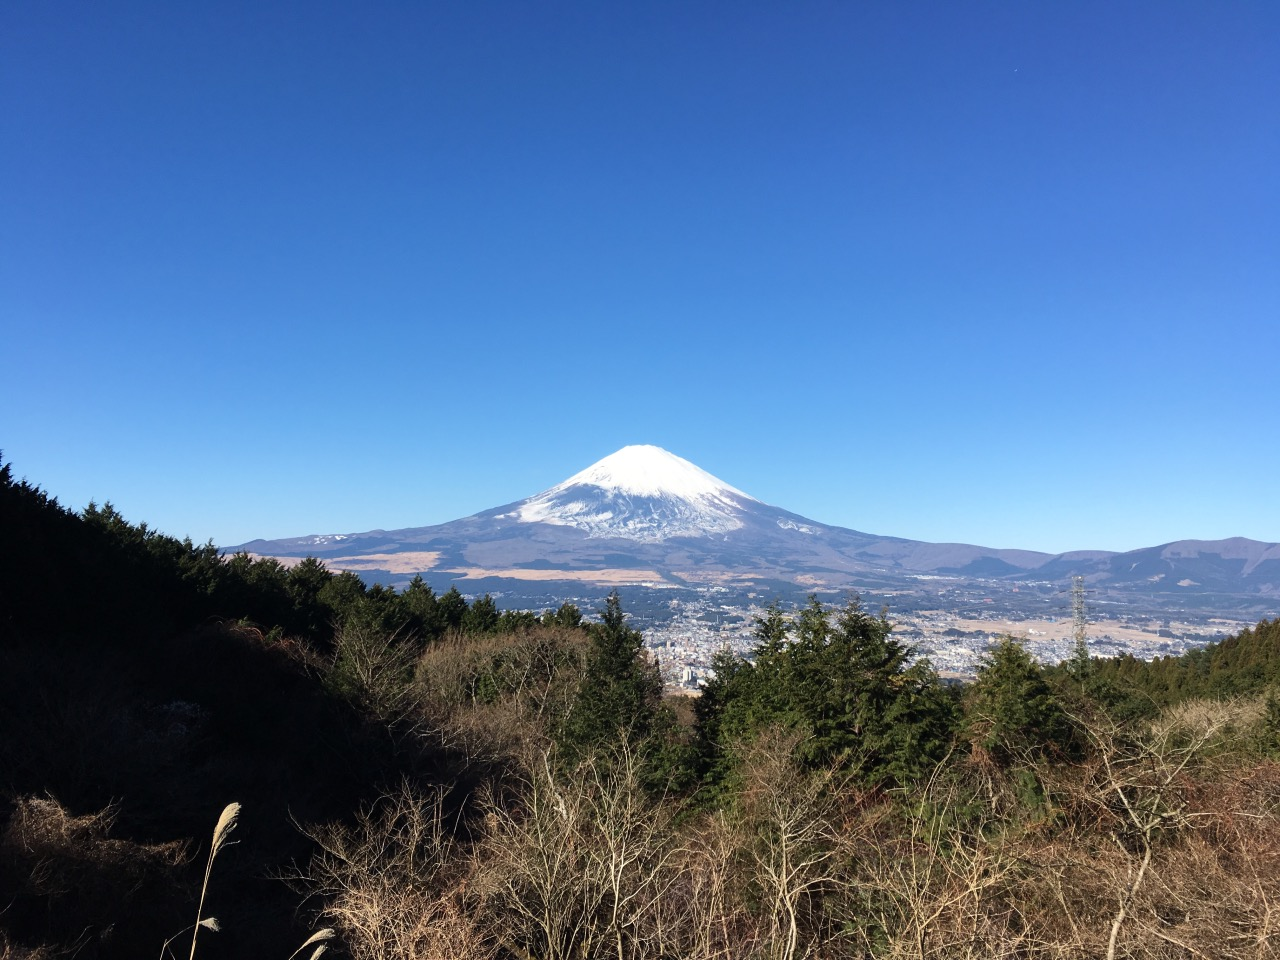 Beautiful place to catch Fuji-san! Between Hakone and Gotemba